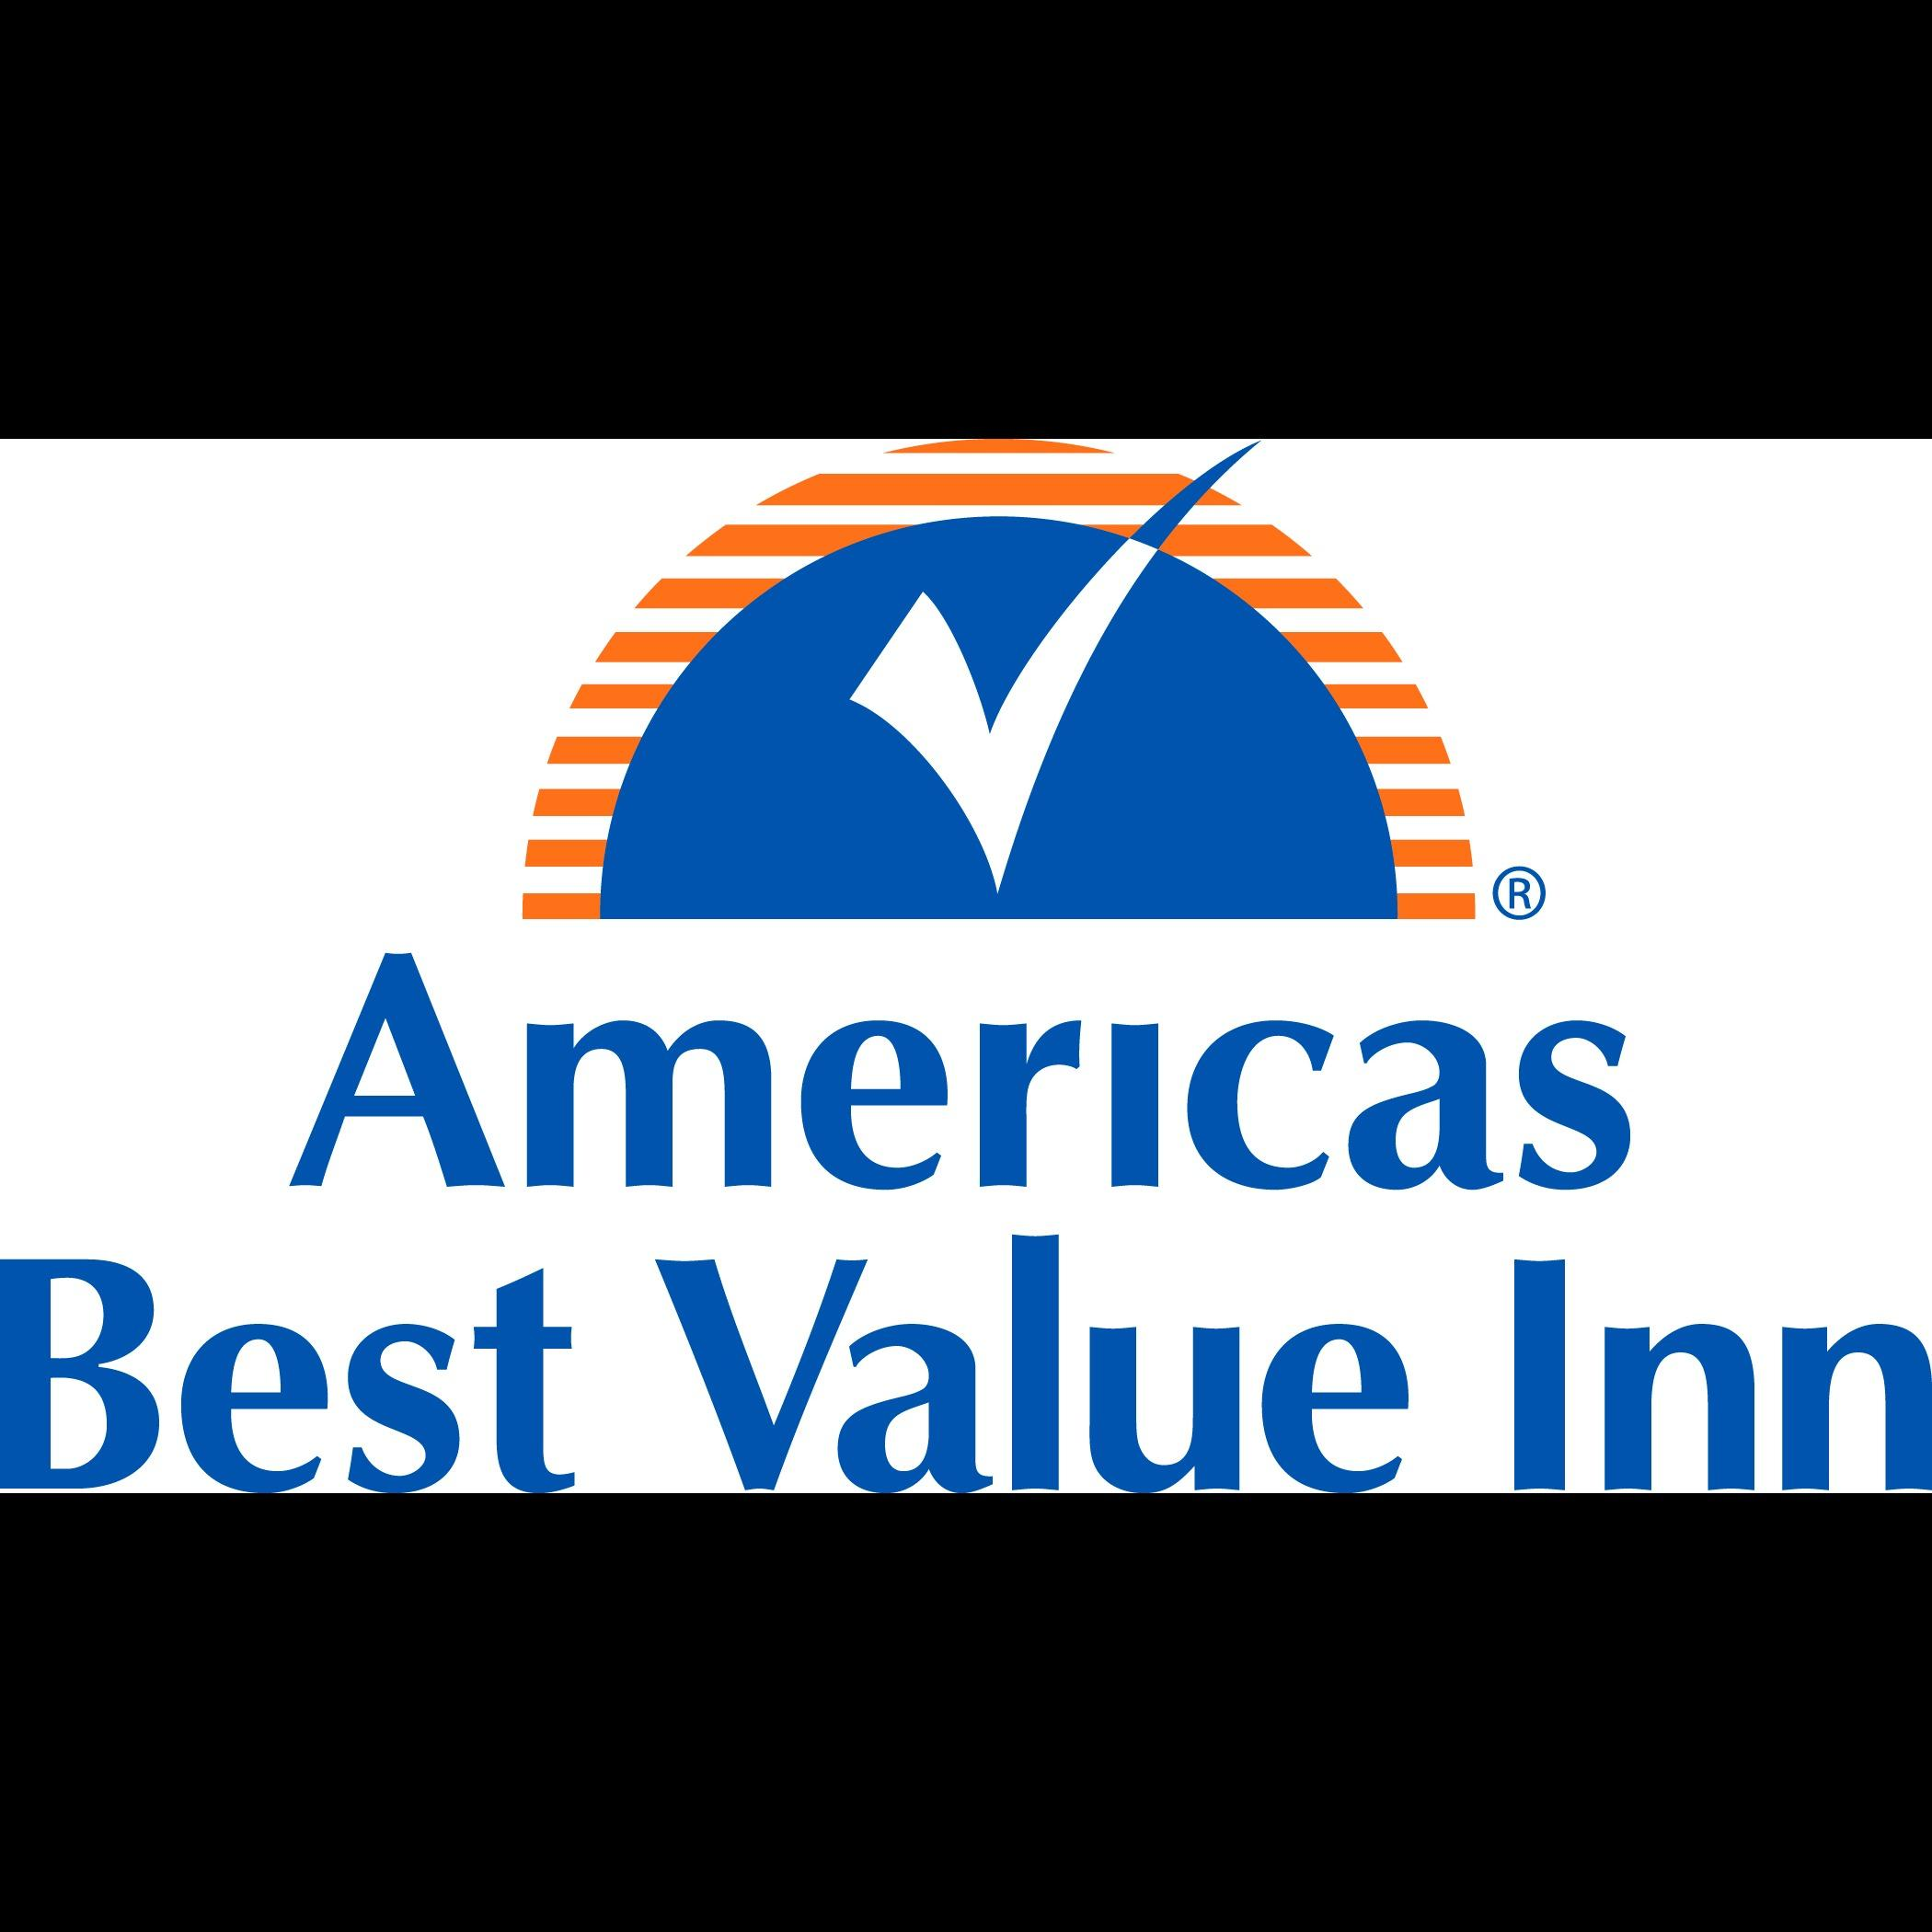 Hotel in CT Danbury 06811 Americas Best Value Inn - Danbury 461 N. Main Street  (203)748-5433